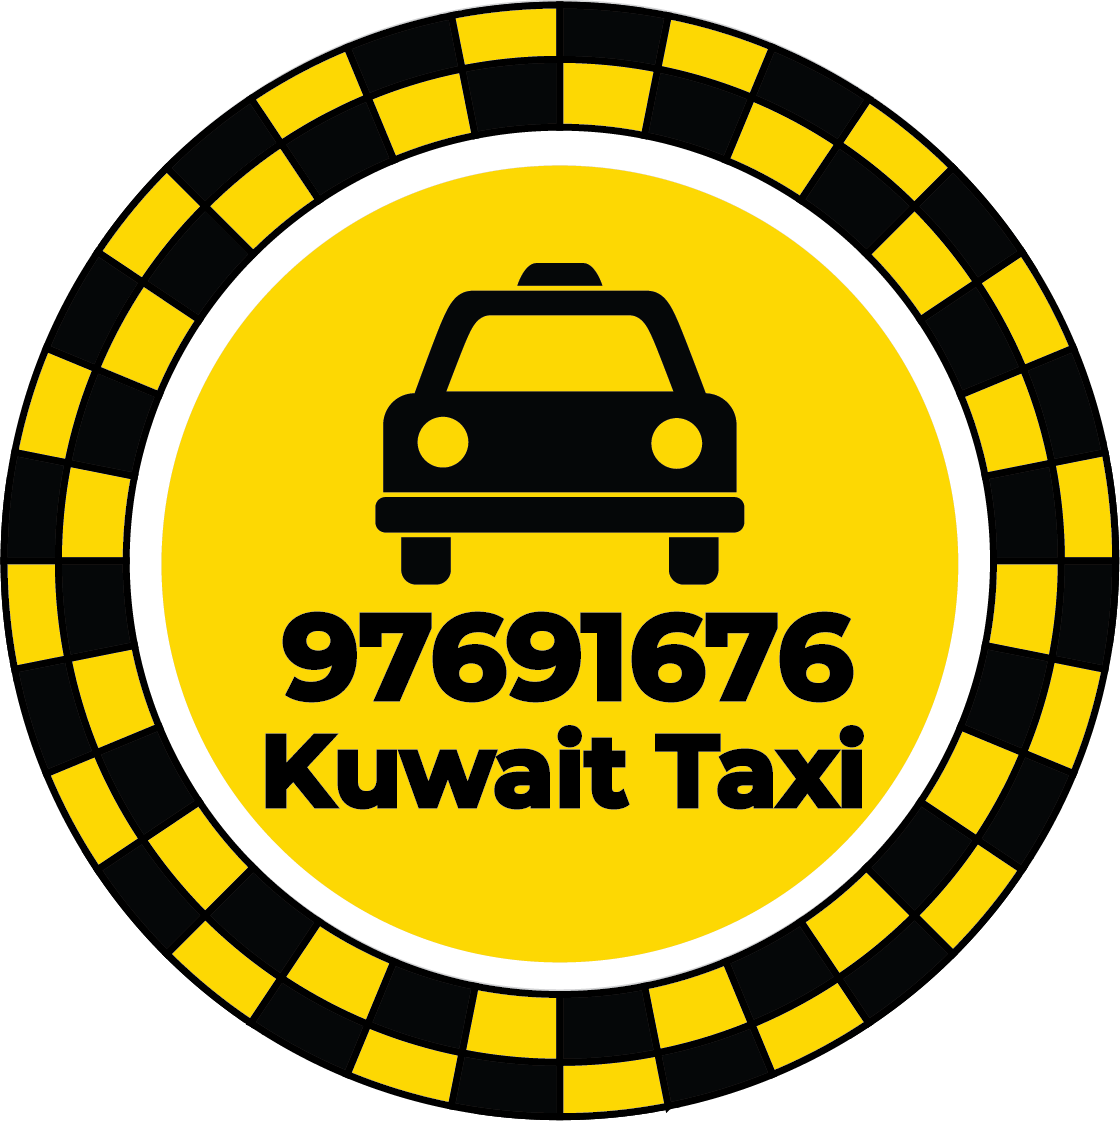 Airport Taxi Kuwait 97691676 - Taxi Delivery to Kuwait